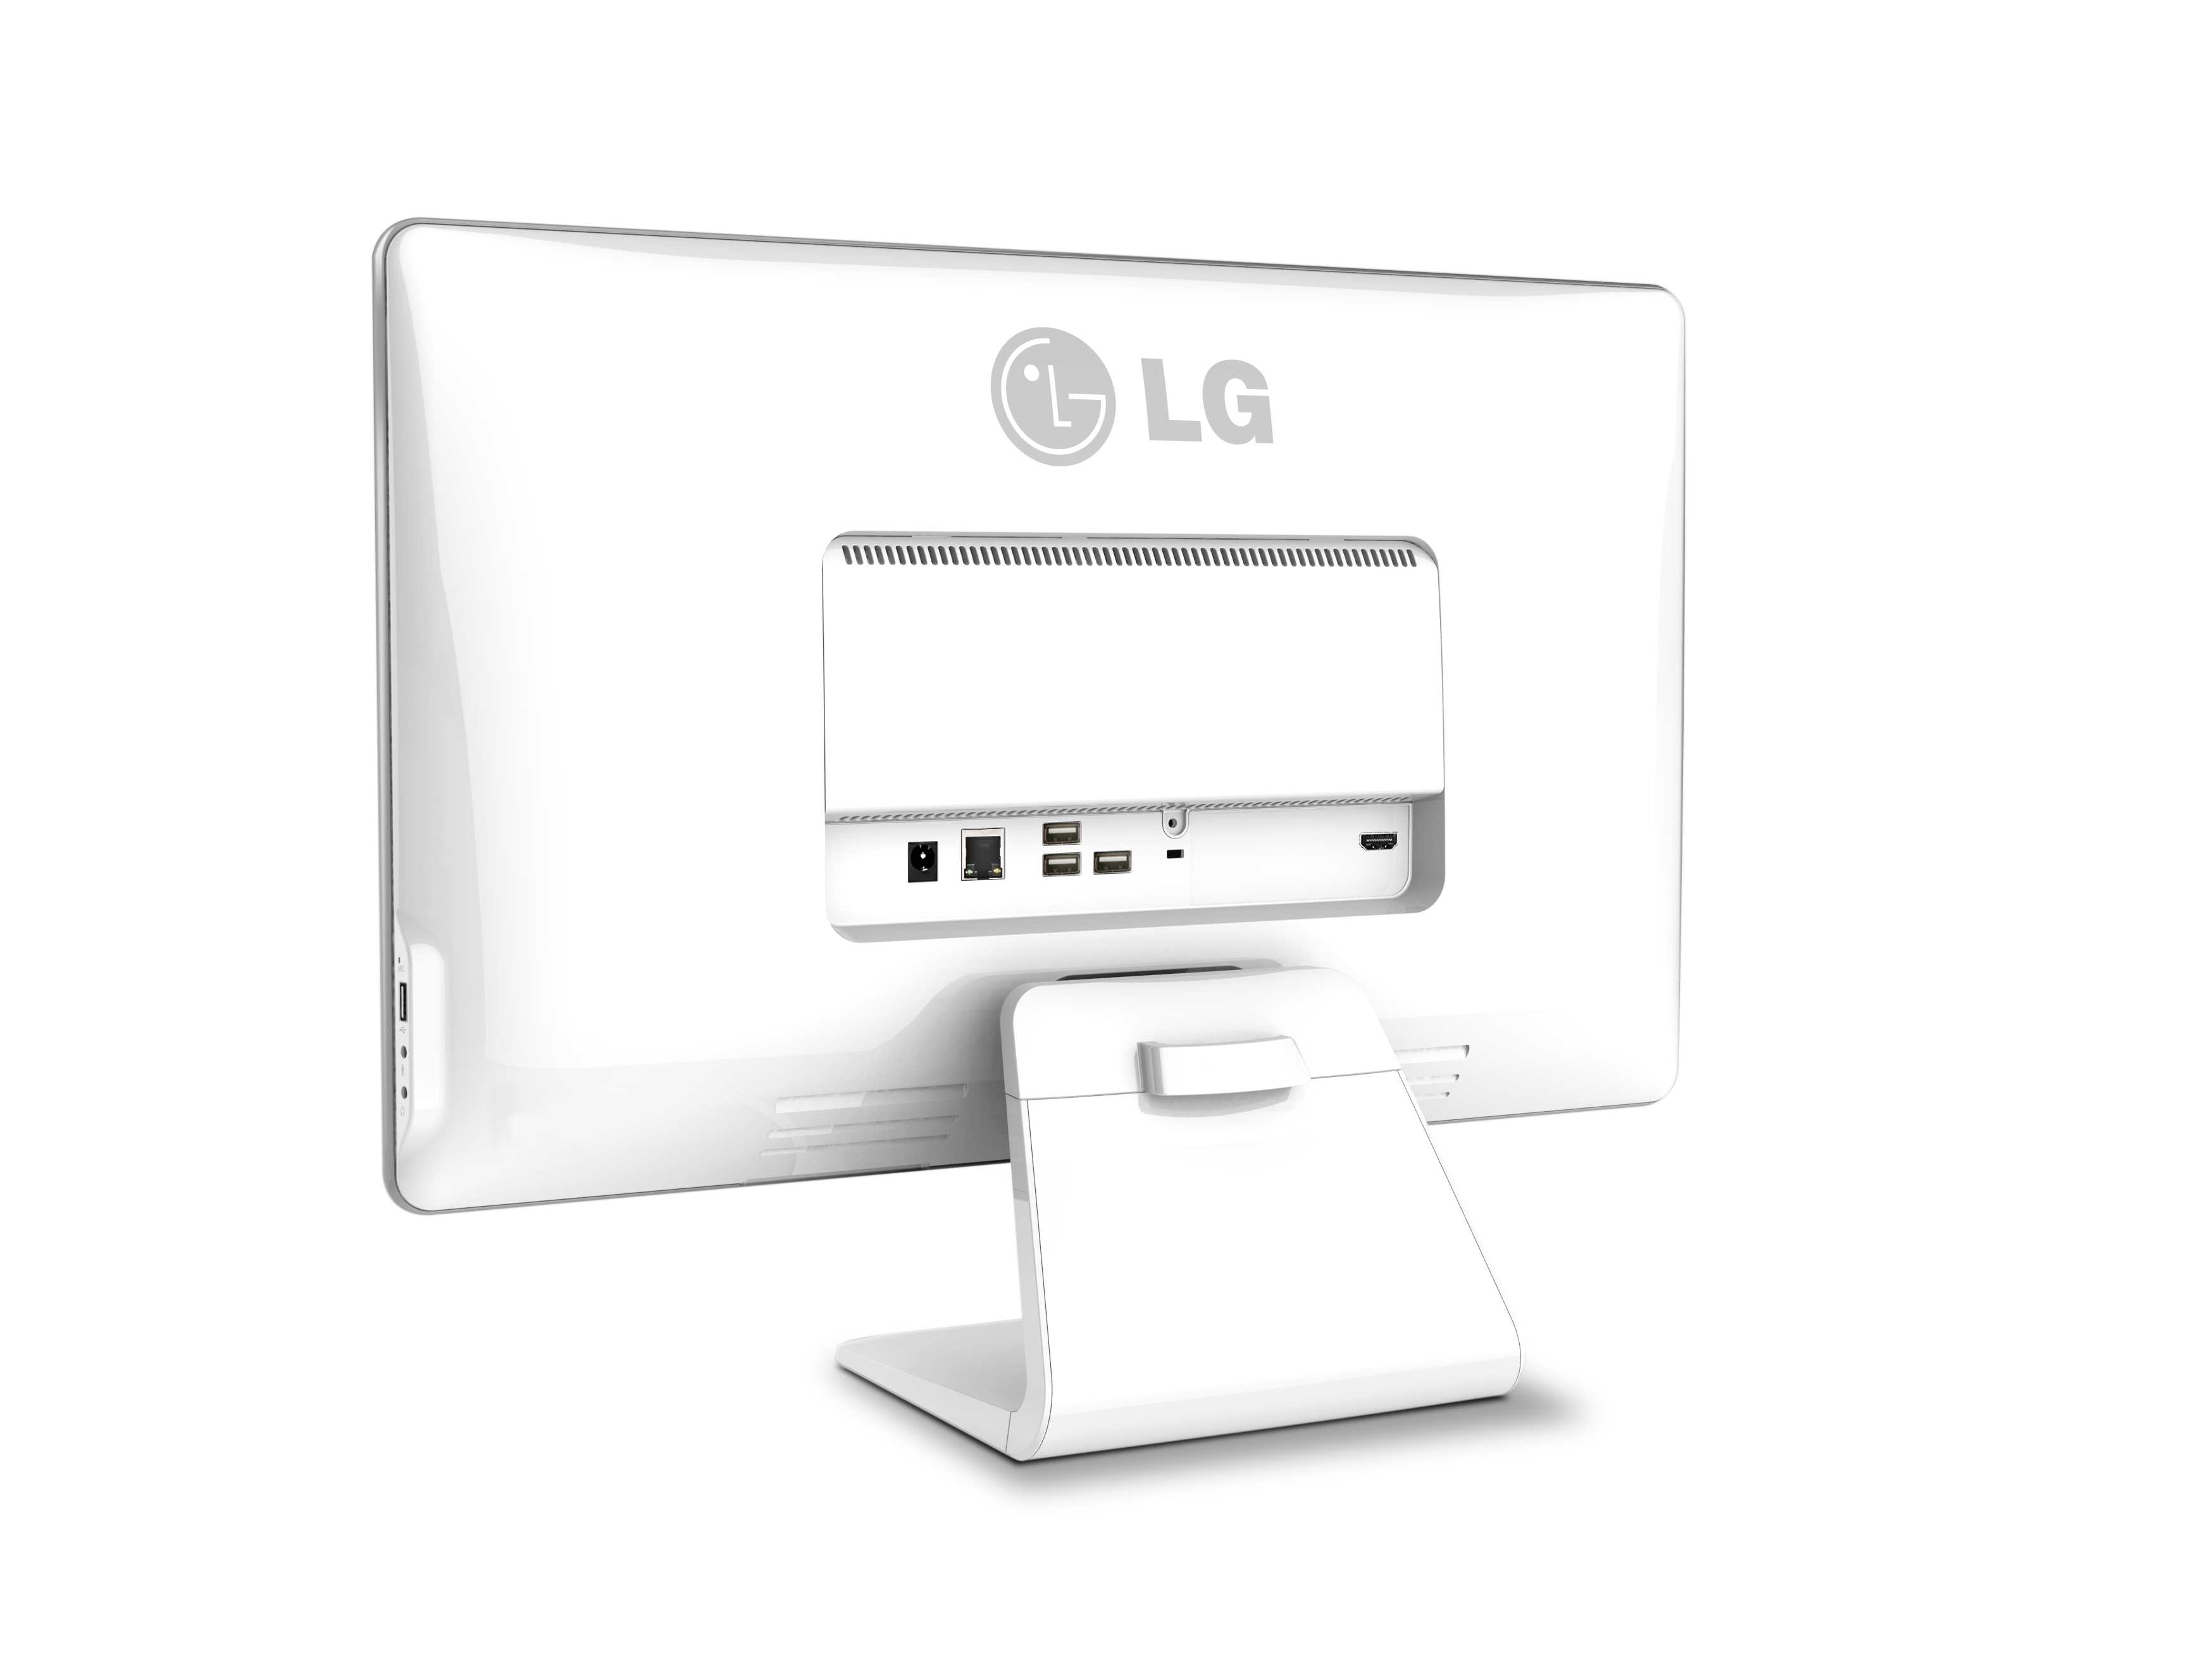 Rear view of LG Chromebase model 22CV241